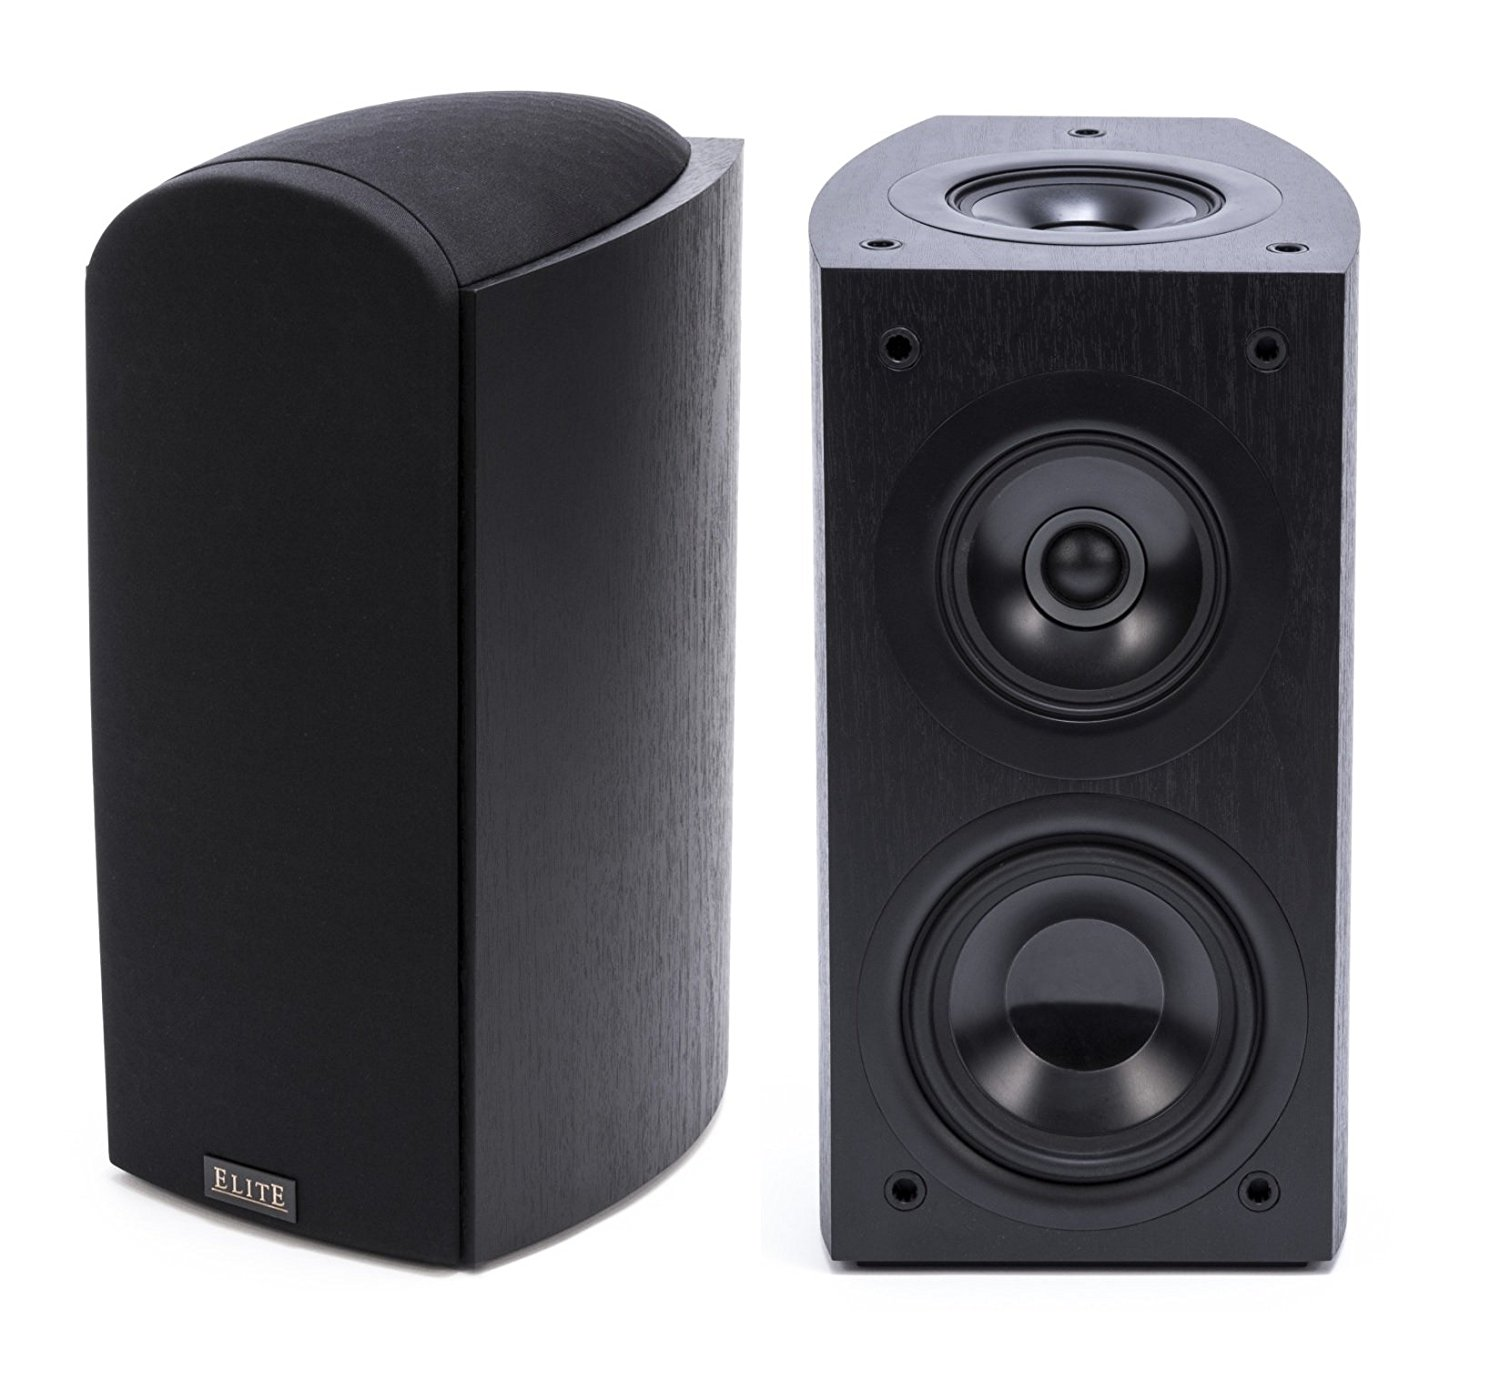 Pioneer Elite SP-EFS73 Dolby Andrew Jones Floor-standing Speaker